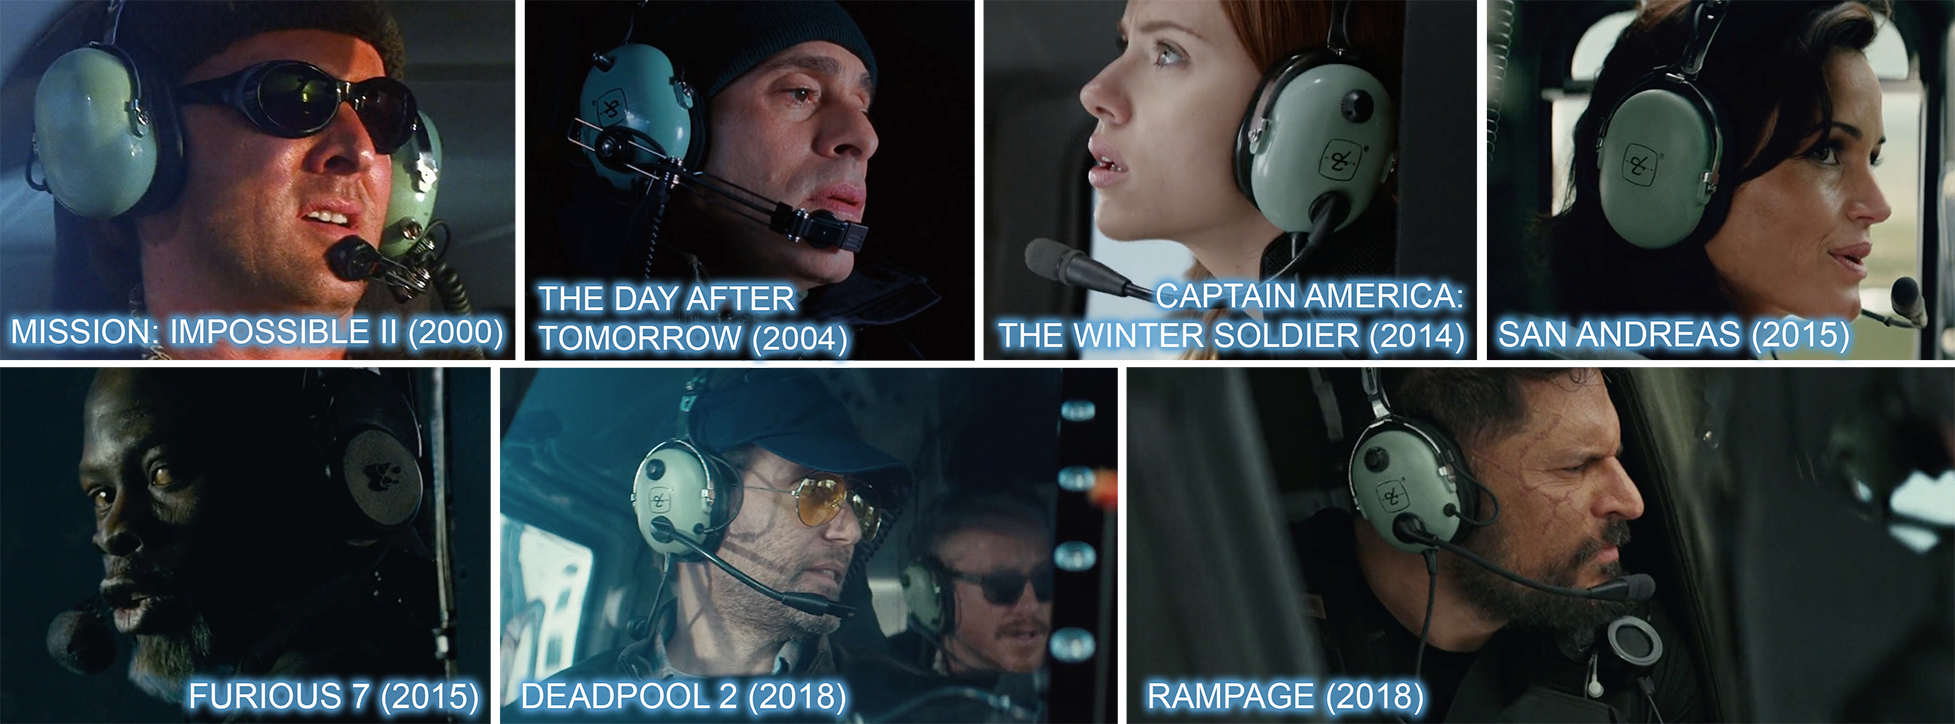 David Clark headsets product placements in movies and film